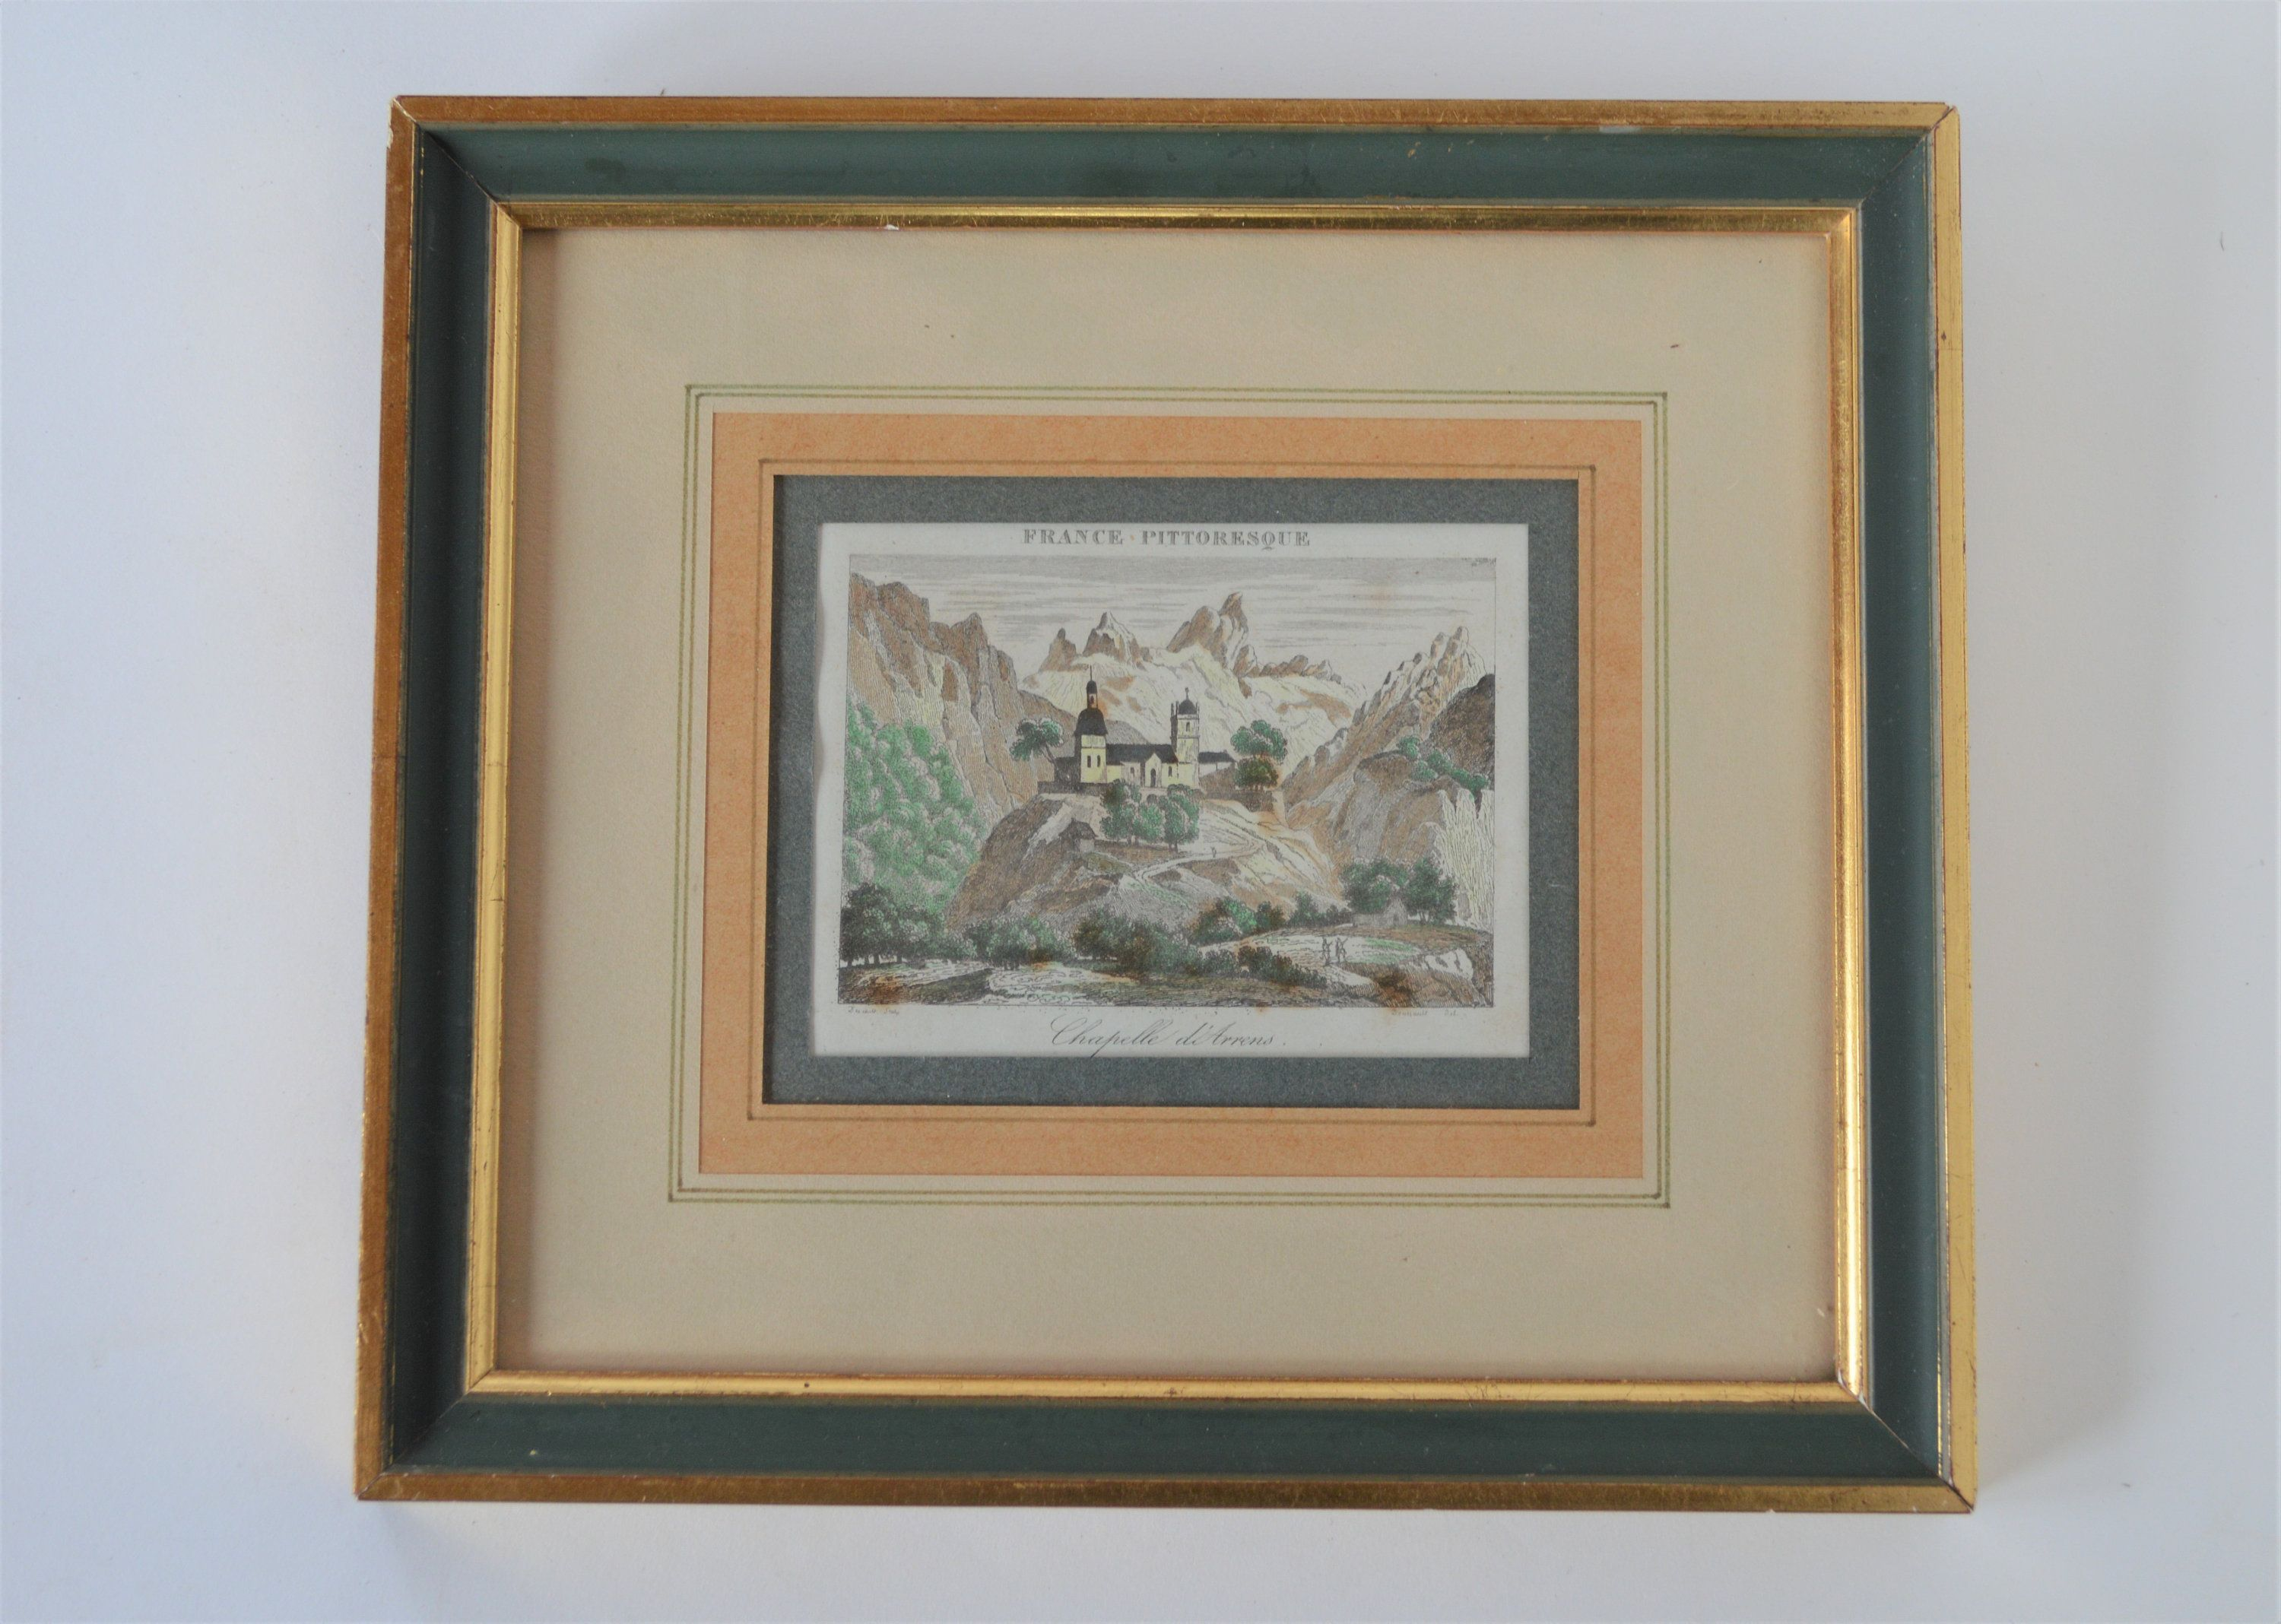 Antique Framed French Engraving Hand Coloured Print Of Etsy Antique Frames Engraving Printing Hand Coloring